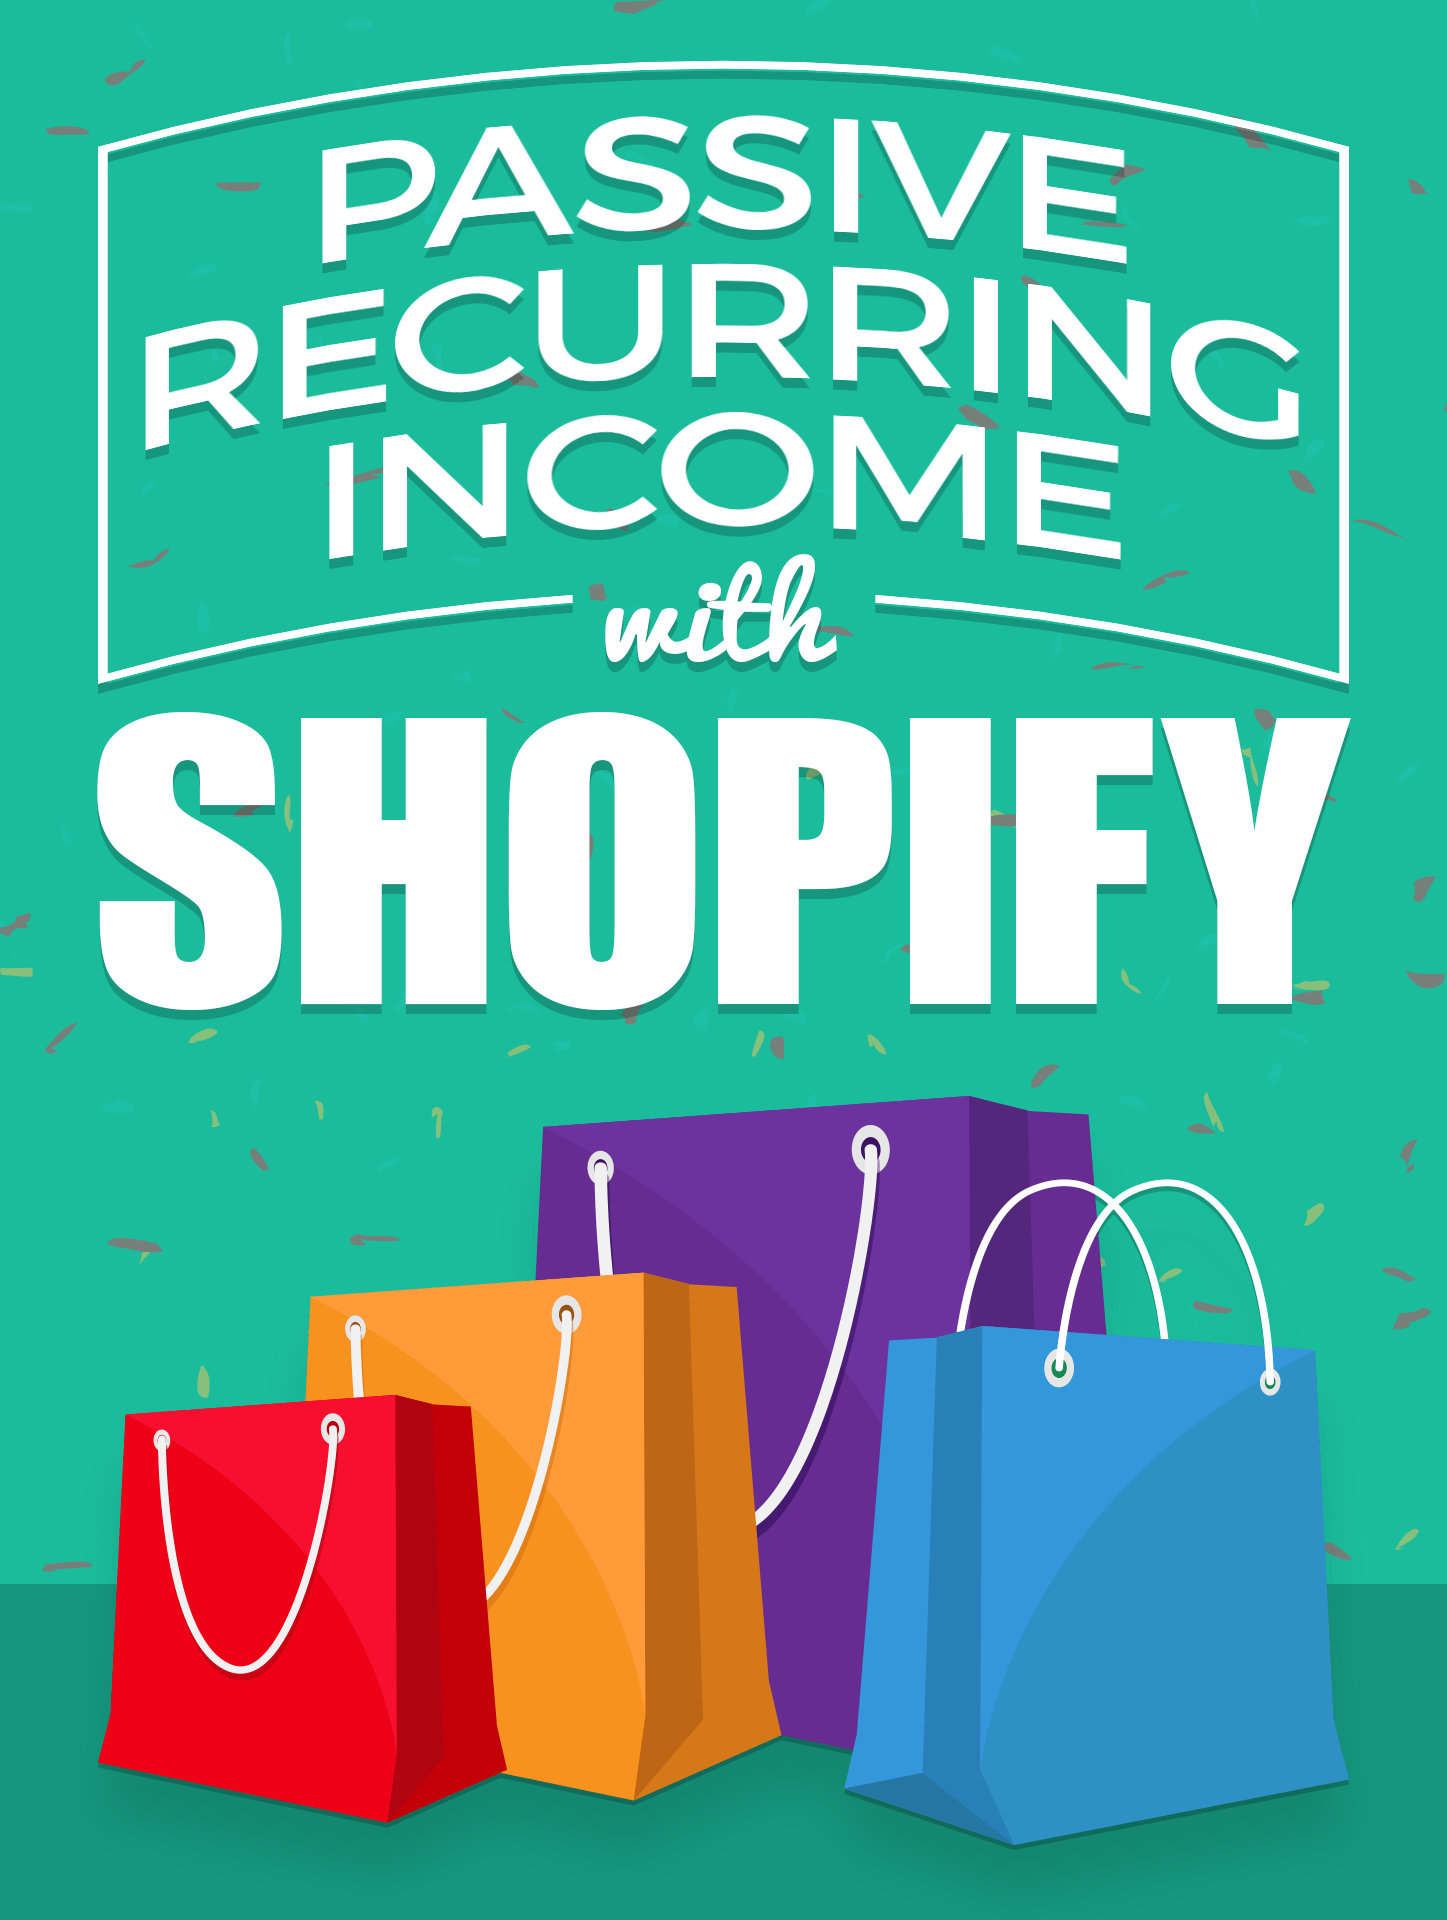 Passive Recurring Income with Shopify - Your Valuable Content + Easy Shopify = Huge Recurring Income